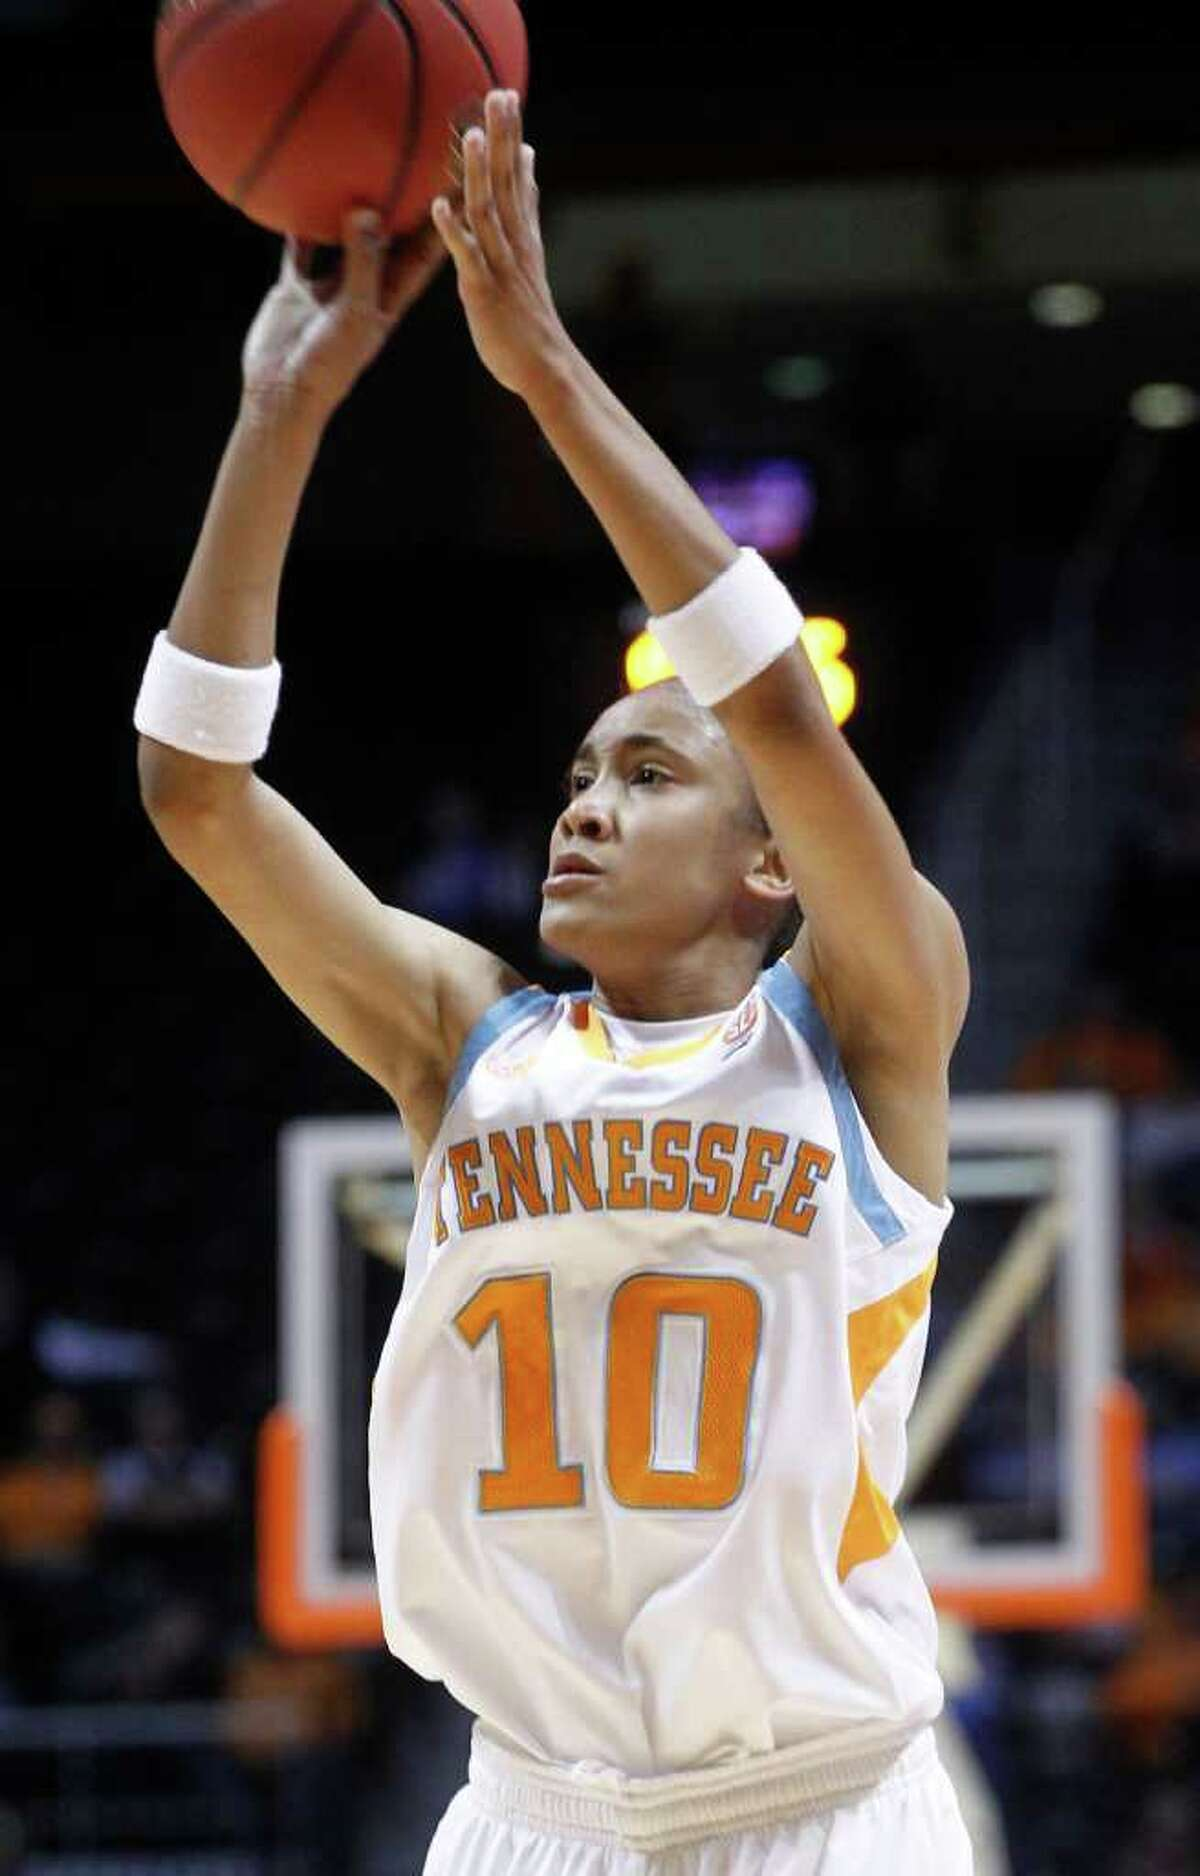 Tennessee's Meighan Simmons shoots during the first half of an NCAA college basketball game against Lamar, Wednesday, Dec. 1, 2010, in Knoxville, Tenn. (AP Photo/Wade Payne)